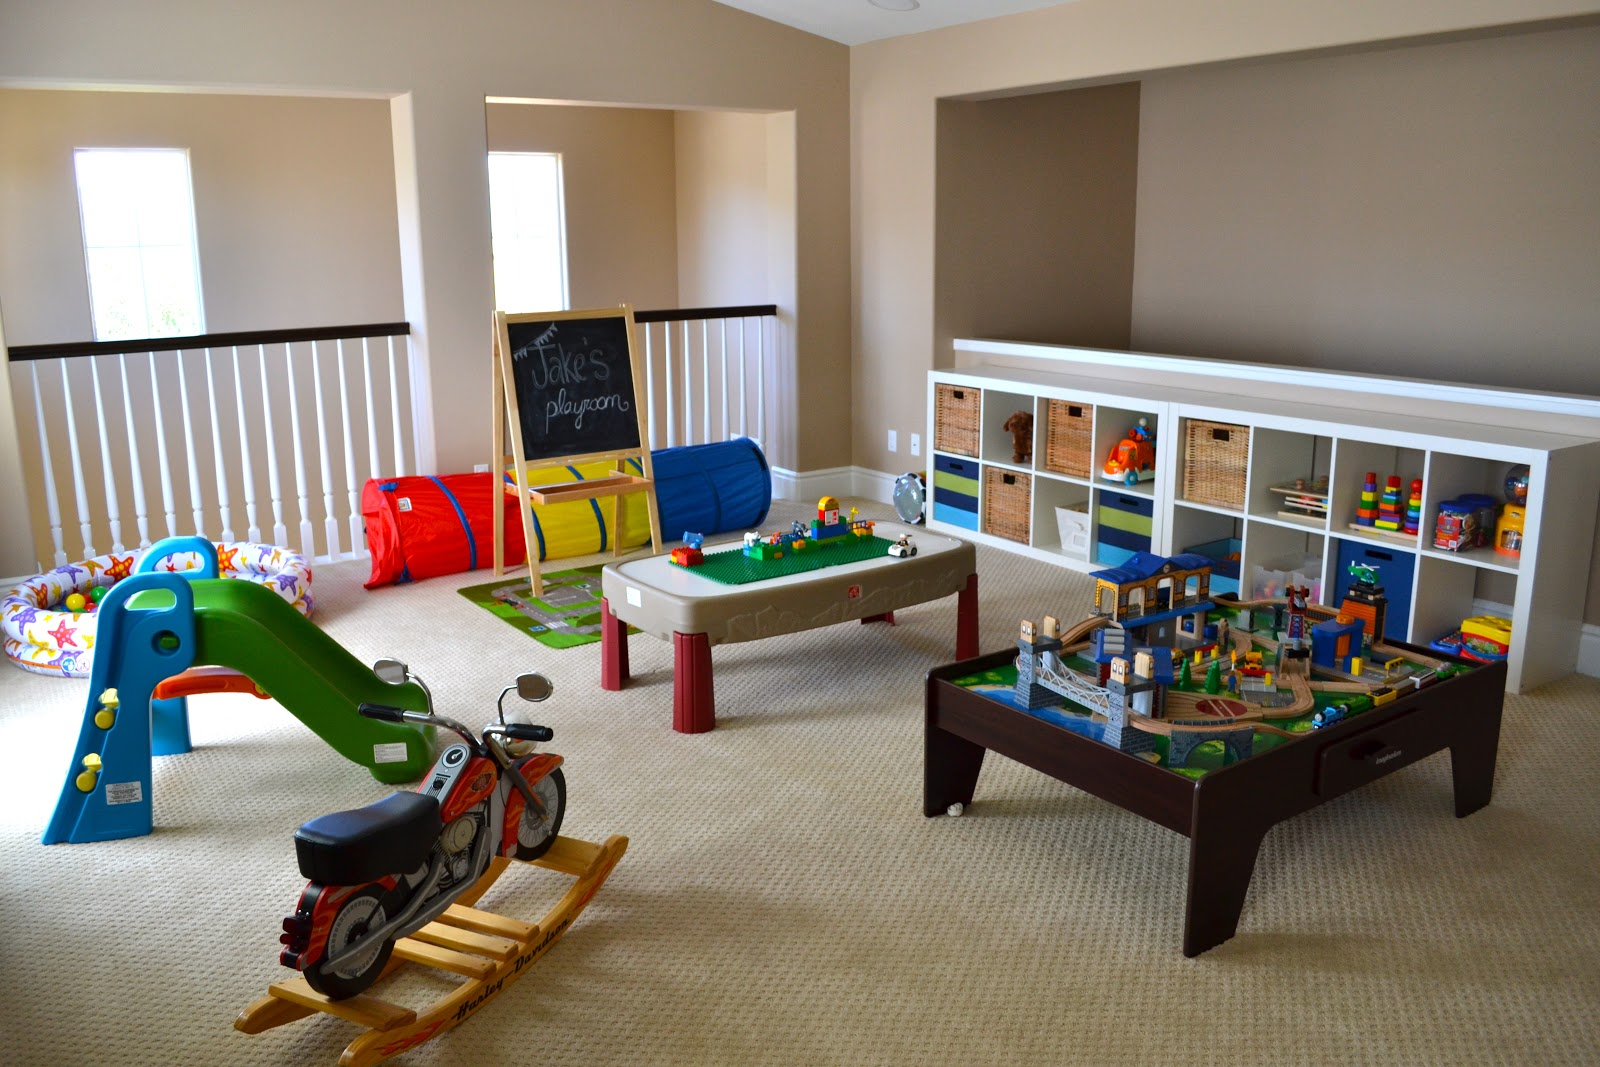 28+ [ playroom ideas ] | kids playroom designs amp ideas,pics